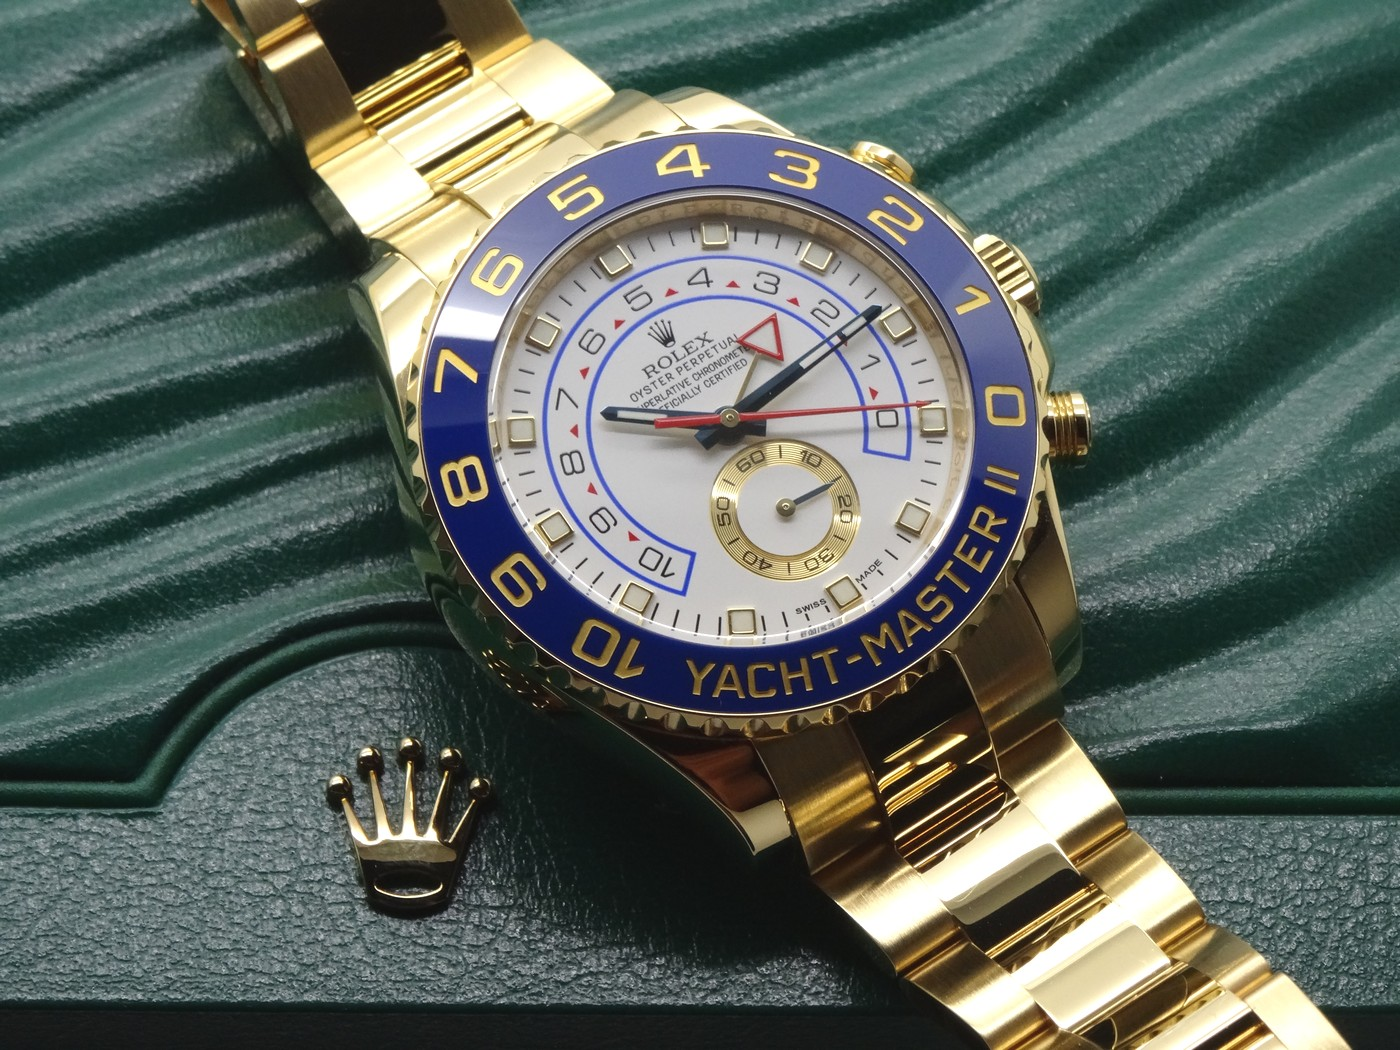 Th durable replica Rolex Yacht-Master II 116688 watches can guarantee water resistance to 330 feet.